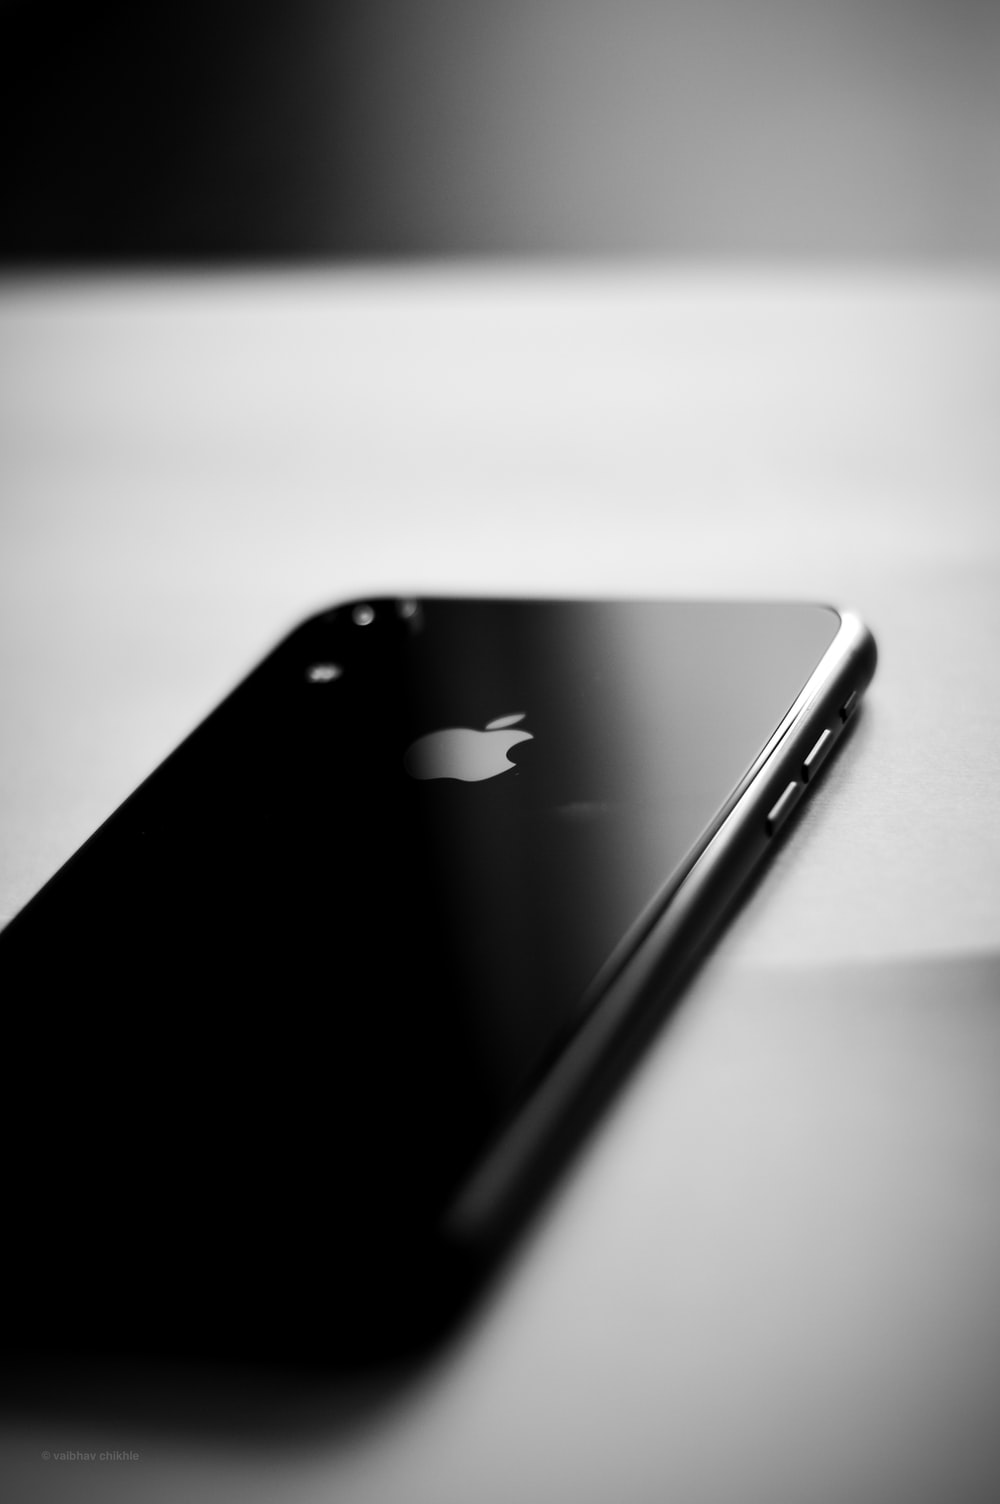 space grey iPhone x